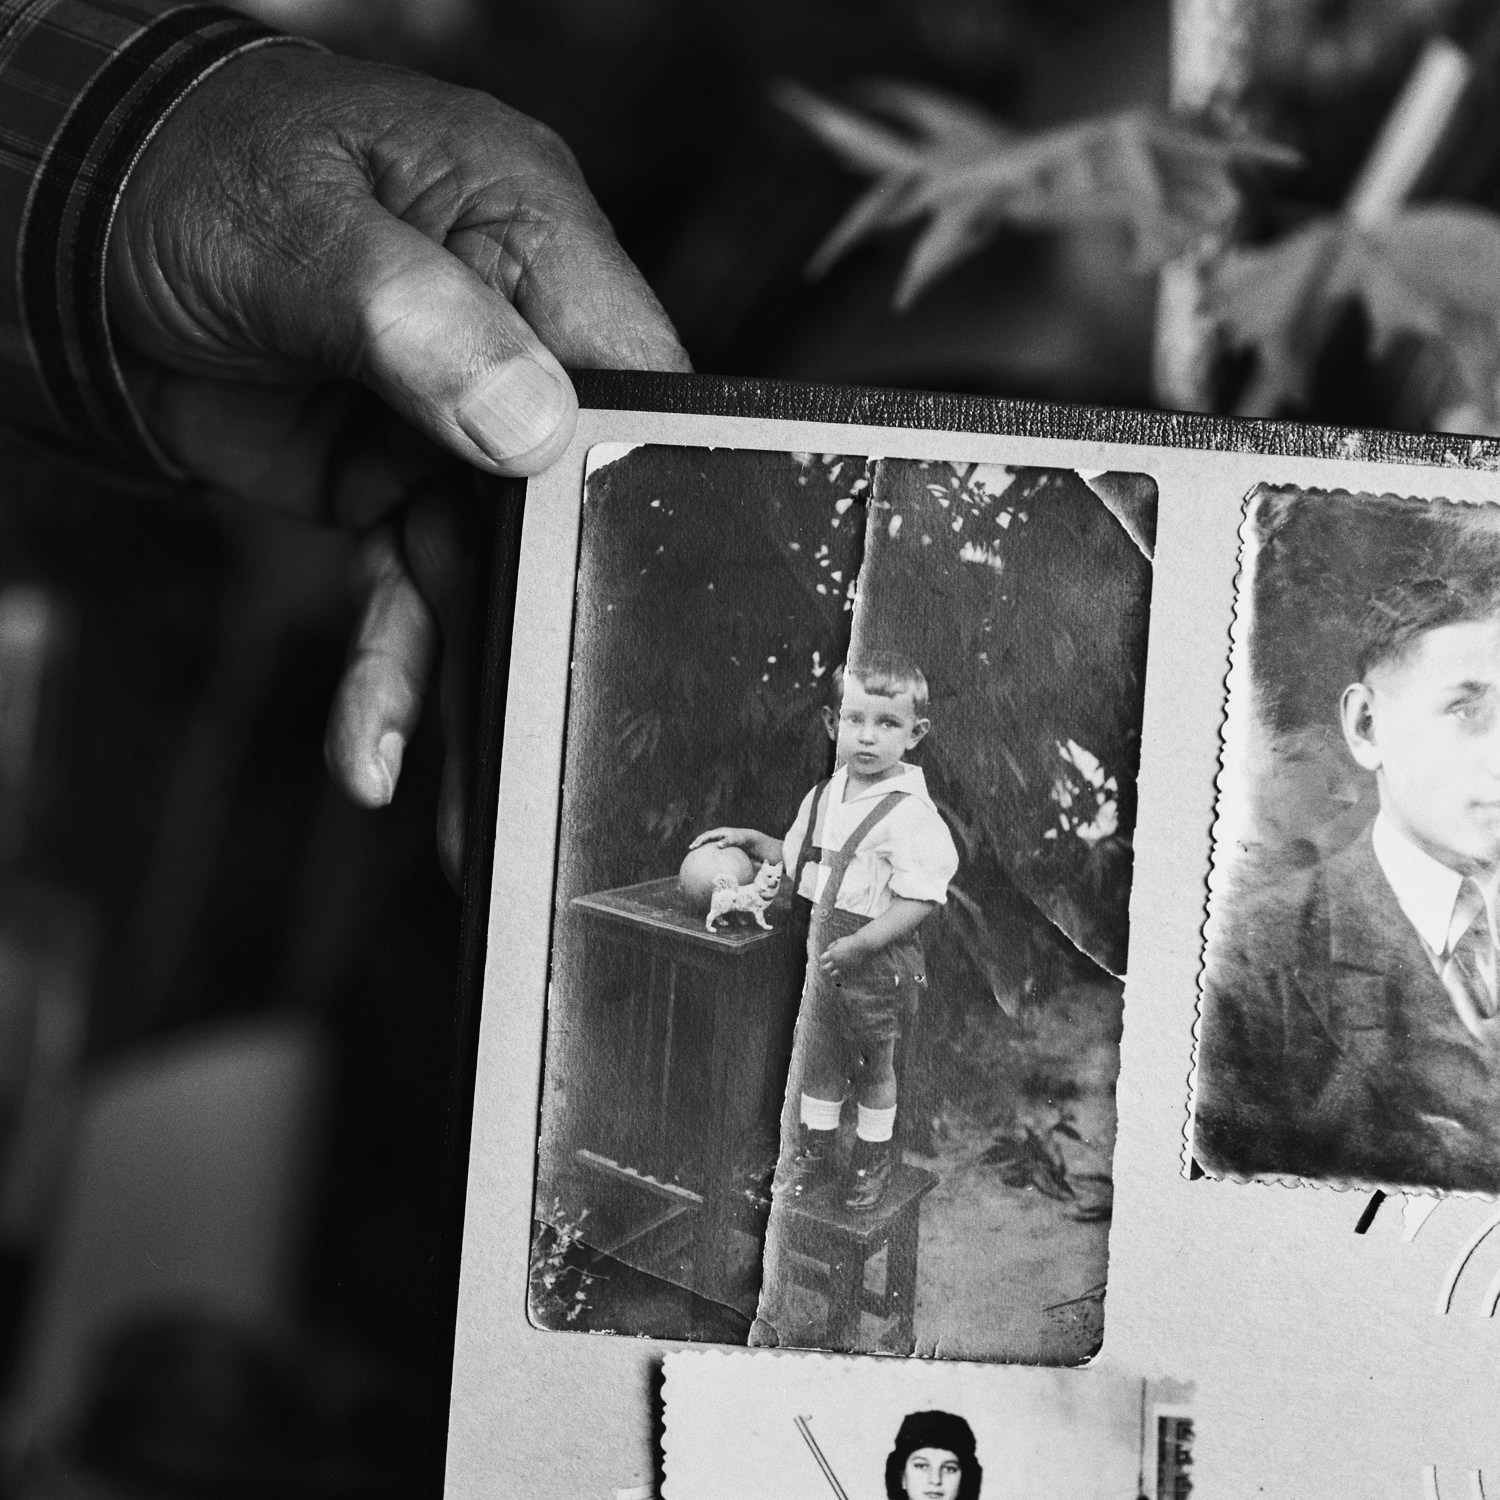 Veteran's hand showing his cracked childhood photos in memory album